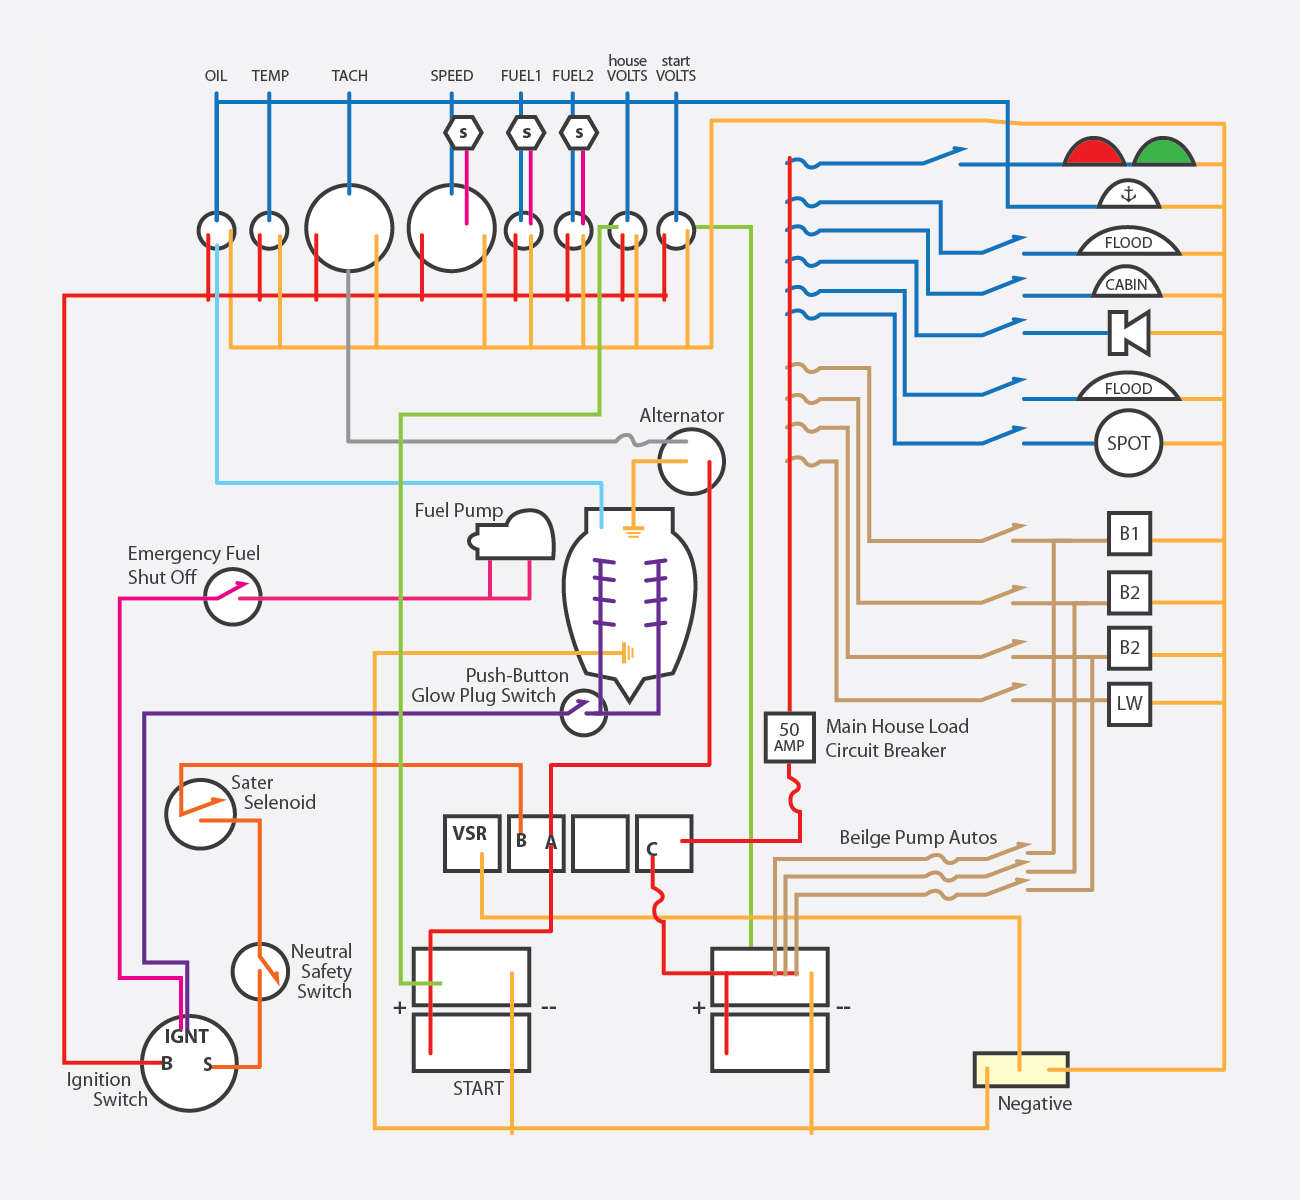 Wondrous B Boat Wiring Diagram Basic Electronics Wiring Diagram Wiring Cloud Overrenstrafr09Org